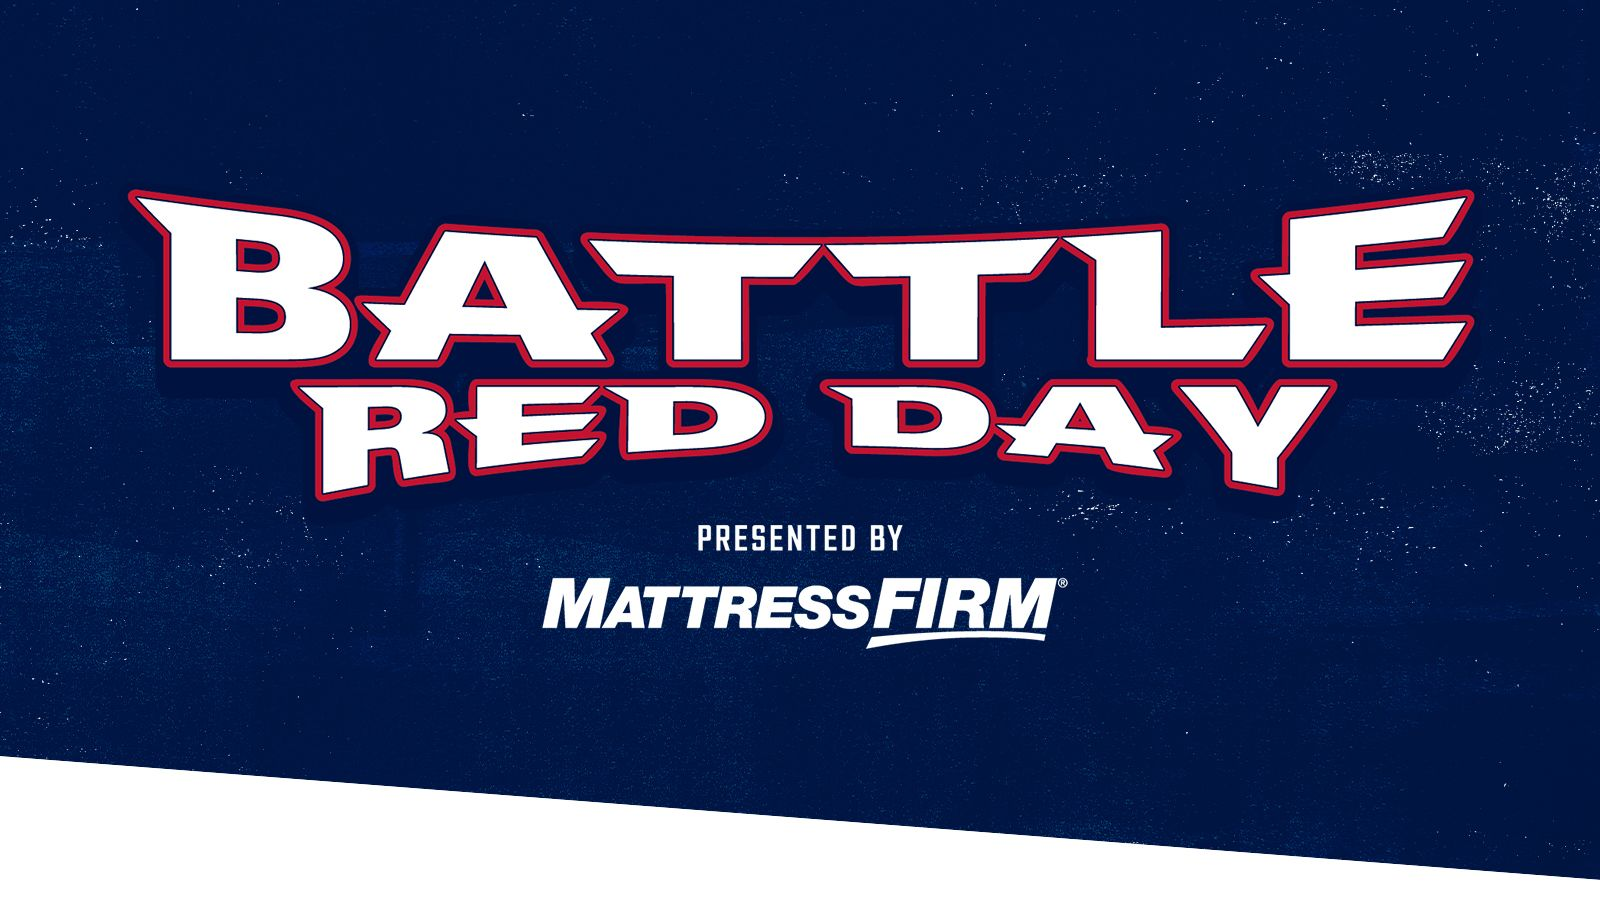 Battle Red Day presented by Mattress Firm